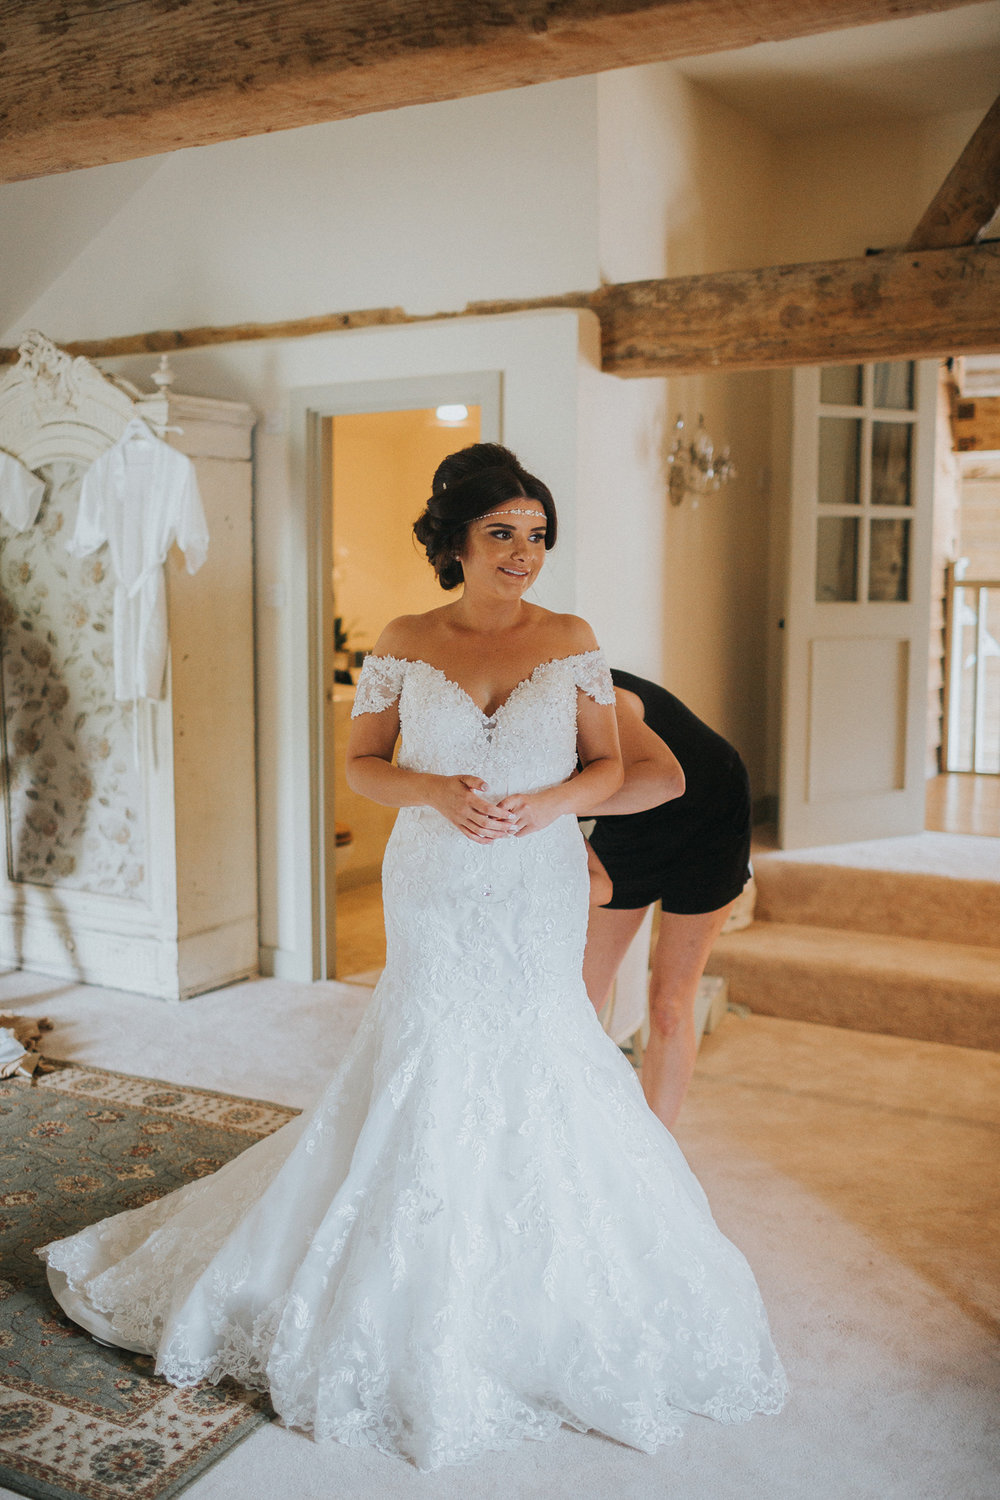 Upwaltham Barns Wedding029.jpg